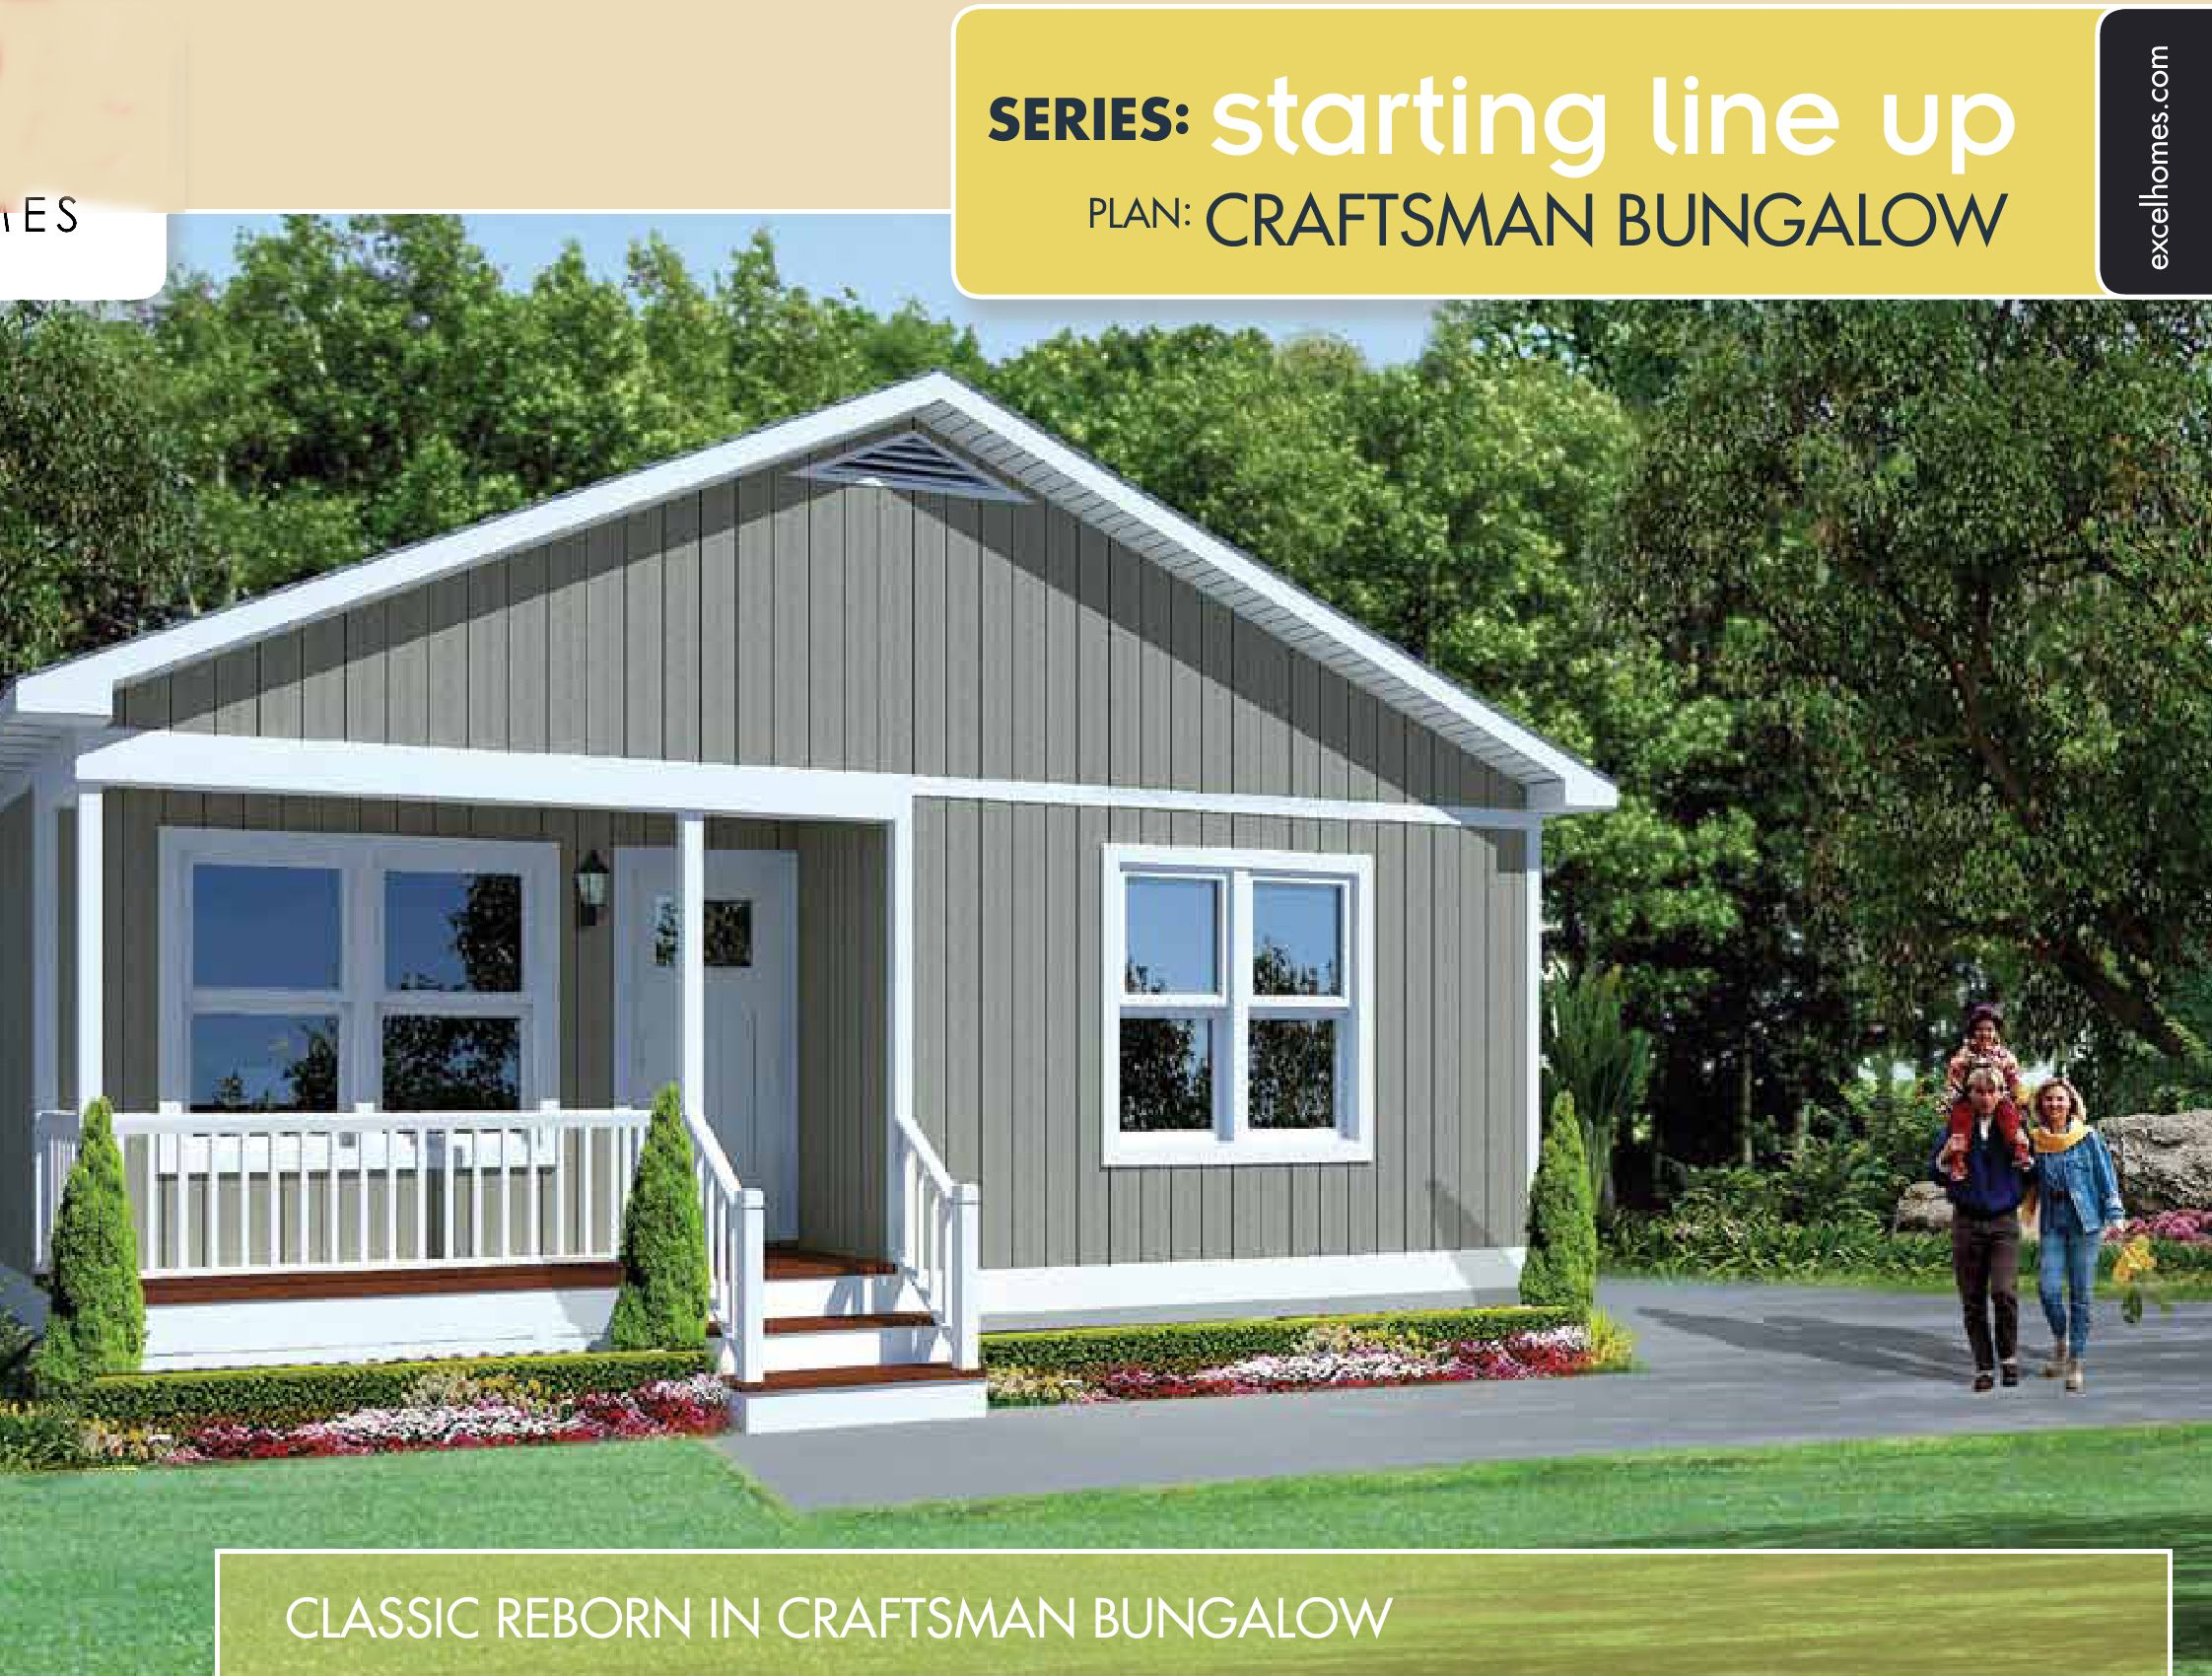 Craftsman Bungalow Mountain Brook Homes Small Modular Homes Modular Home Plans Prefab Modular Homes